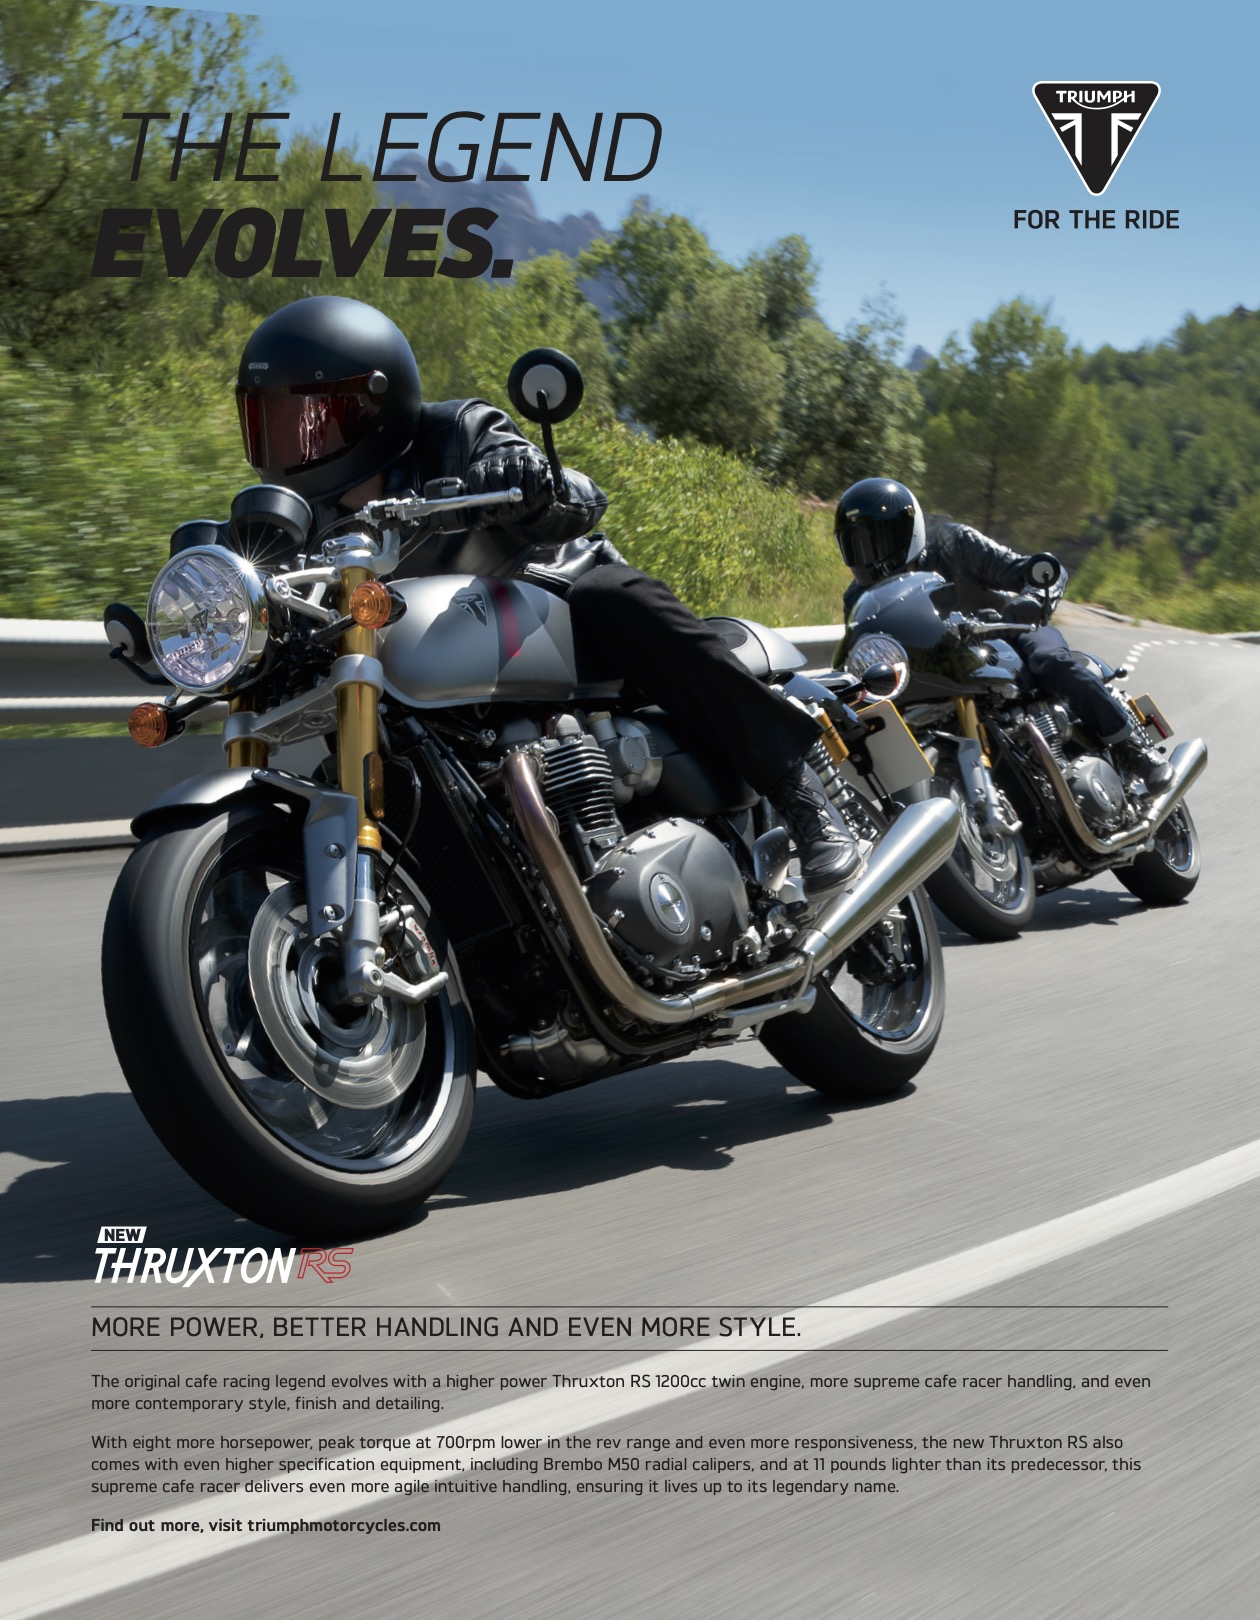 https://www.triumphmotorcycles.com/motorcycles/classic/thruxton-rs